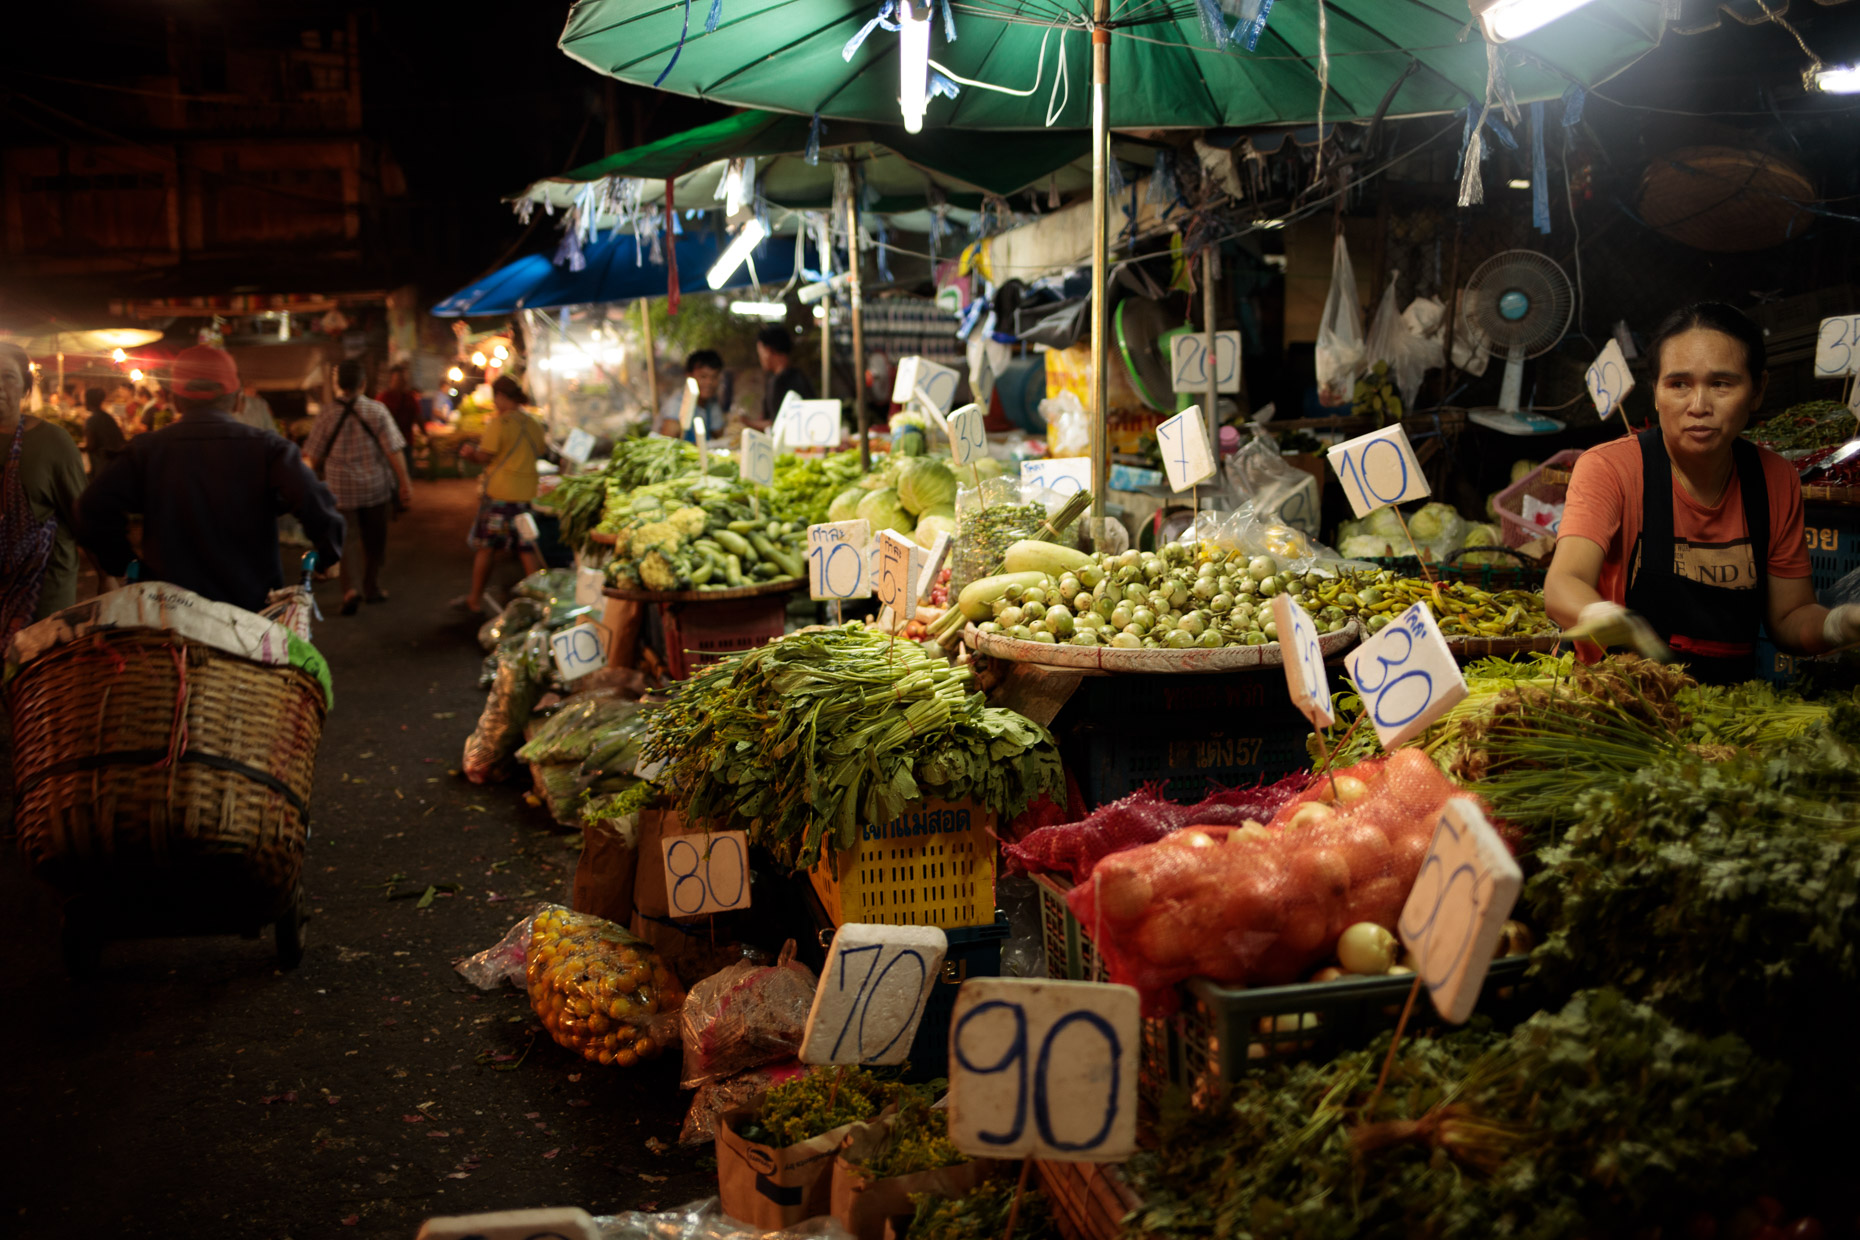 Early morning in a market in Bangkok